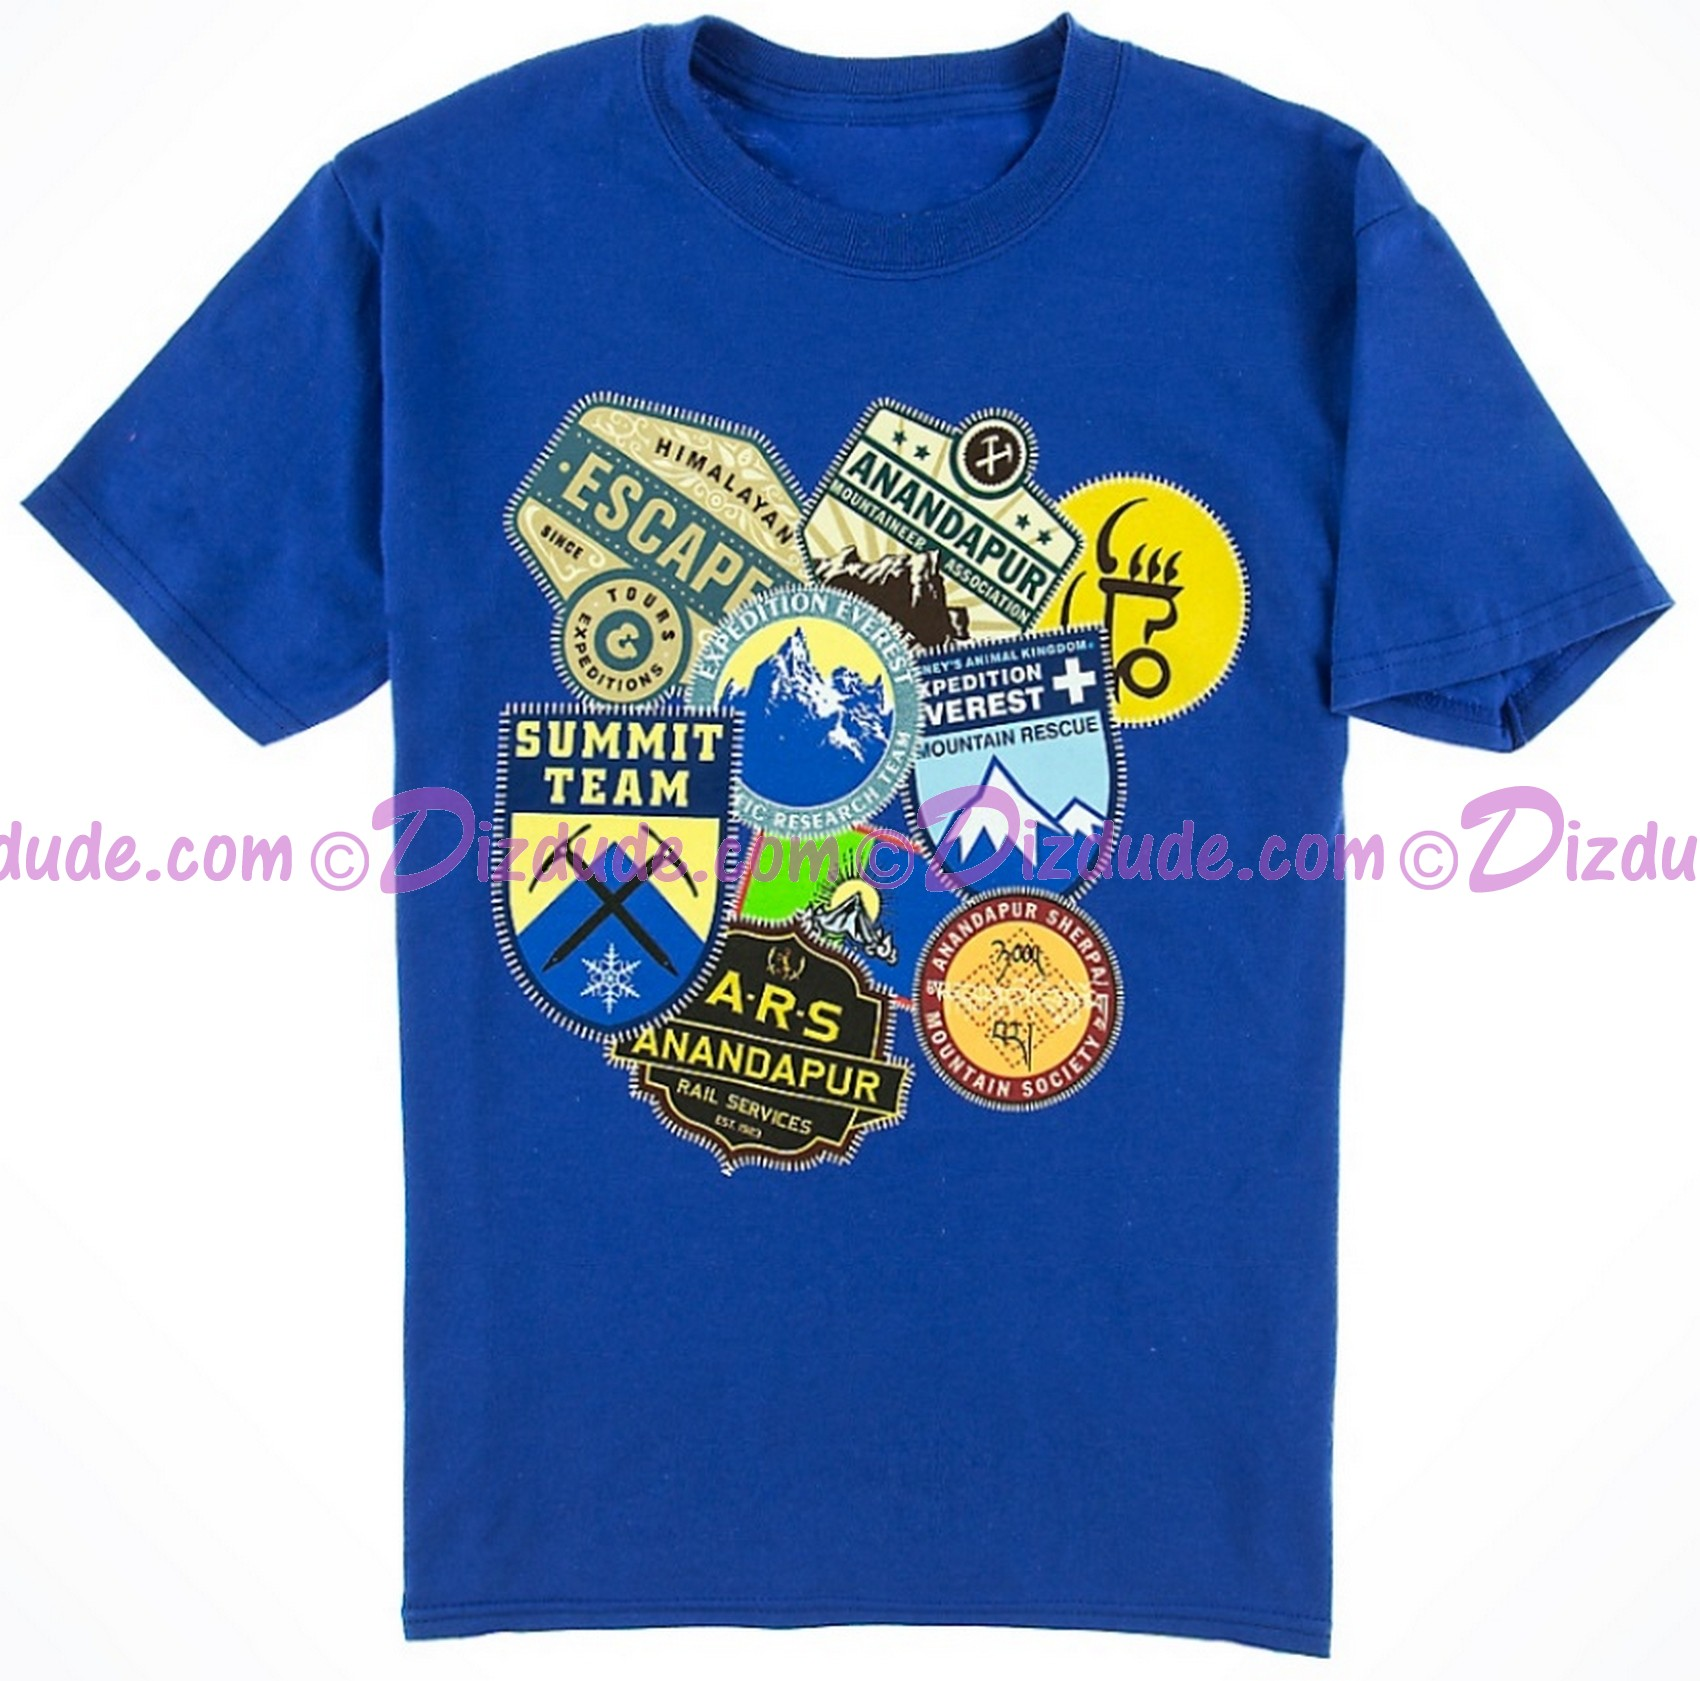 (SOLD OUT) VINTAGE Disney Animal Kingdoms Expedition Everest Patches Youth T-Shirt (Tee, Tshirt or T shirt)